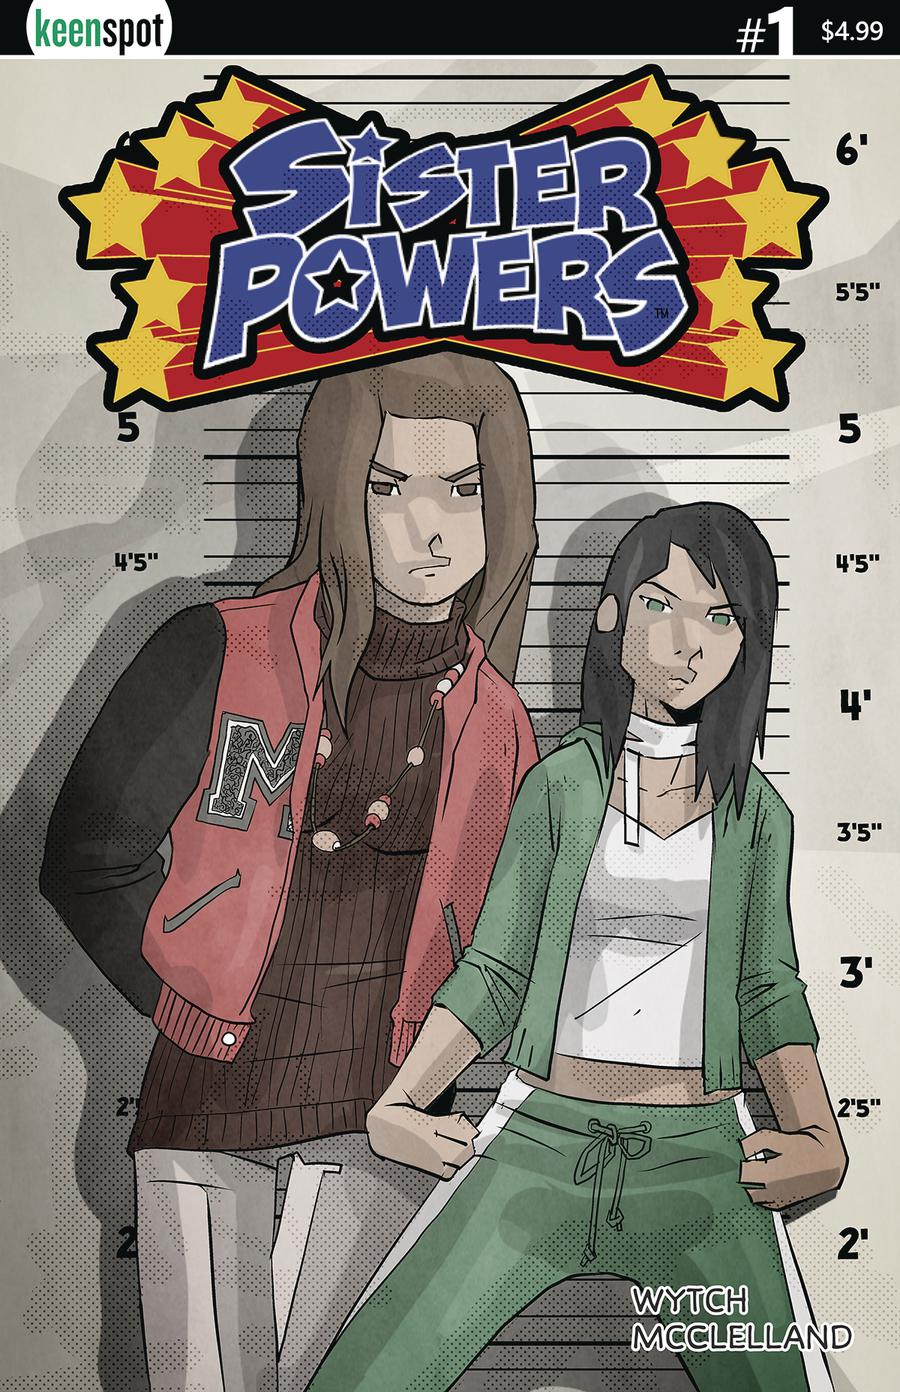 Sister Powers #1 Cover A Regular Mario Wytch Cover